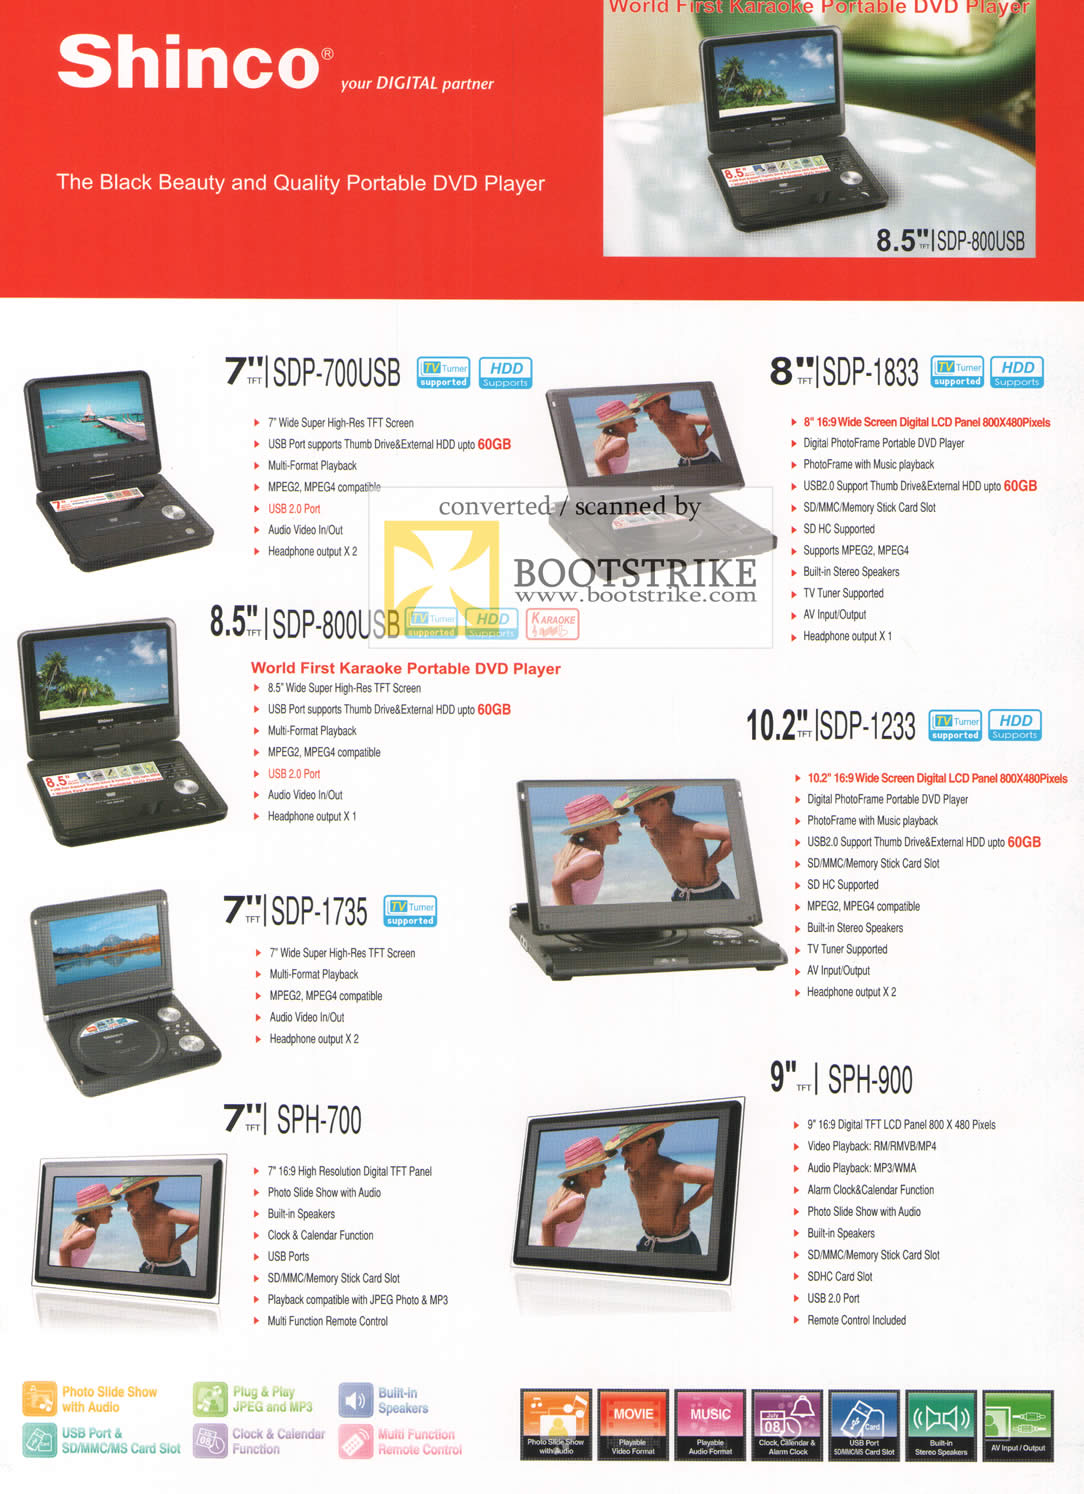 Comex 2009 price list image brochure of Shinco Portable DVD Player ISDP 700USB 1833 800USB 1233 1735 700 SPH 900